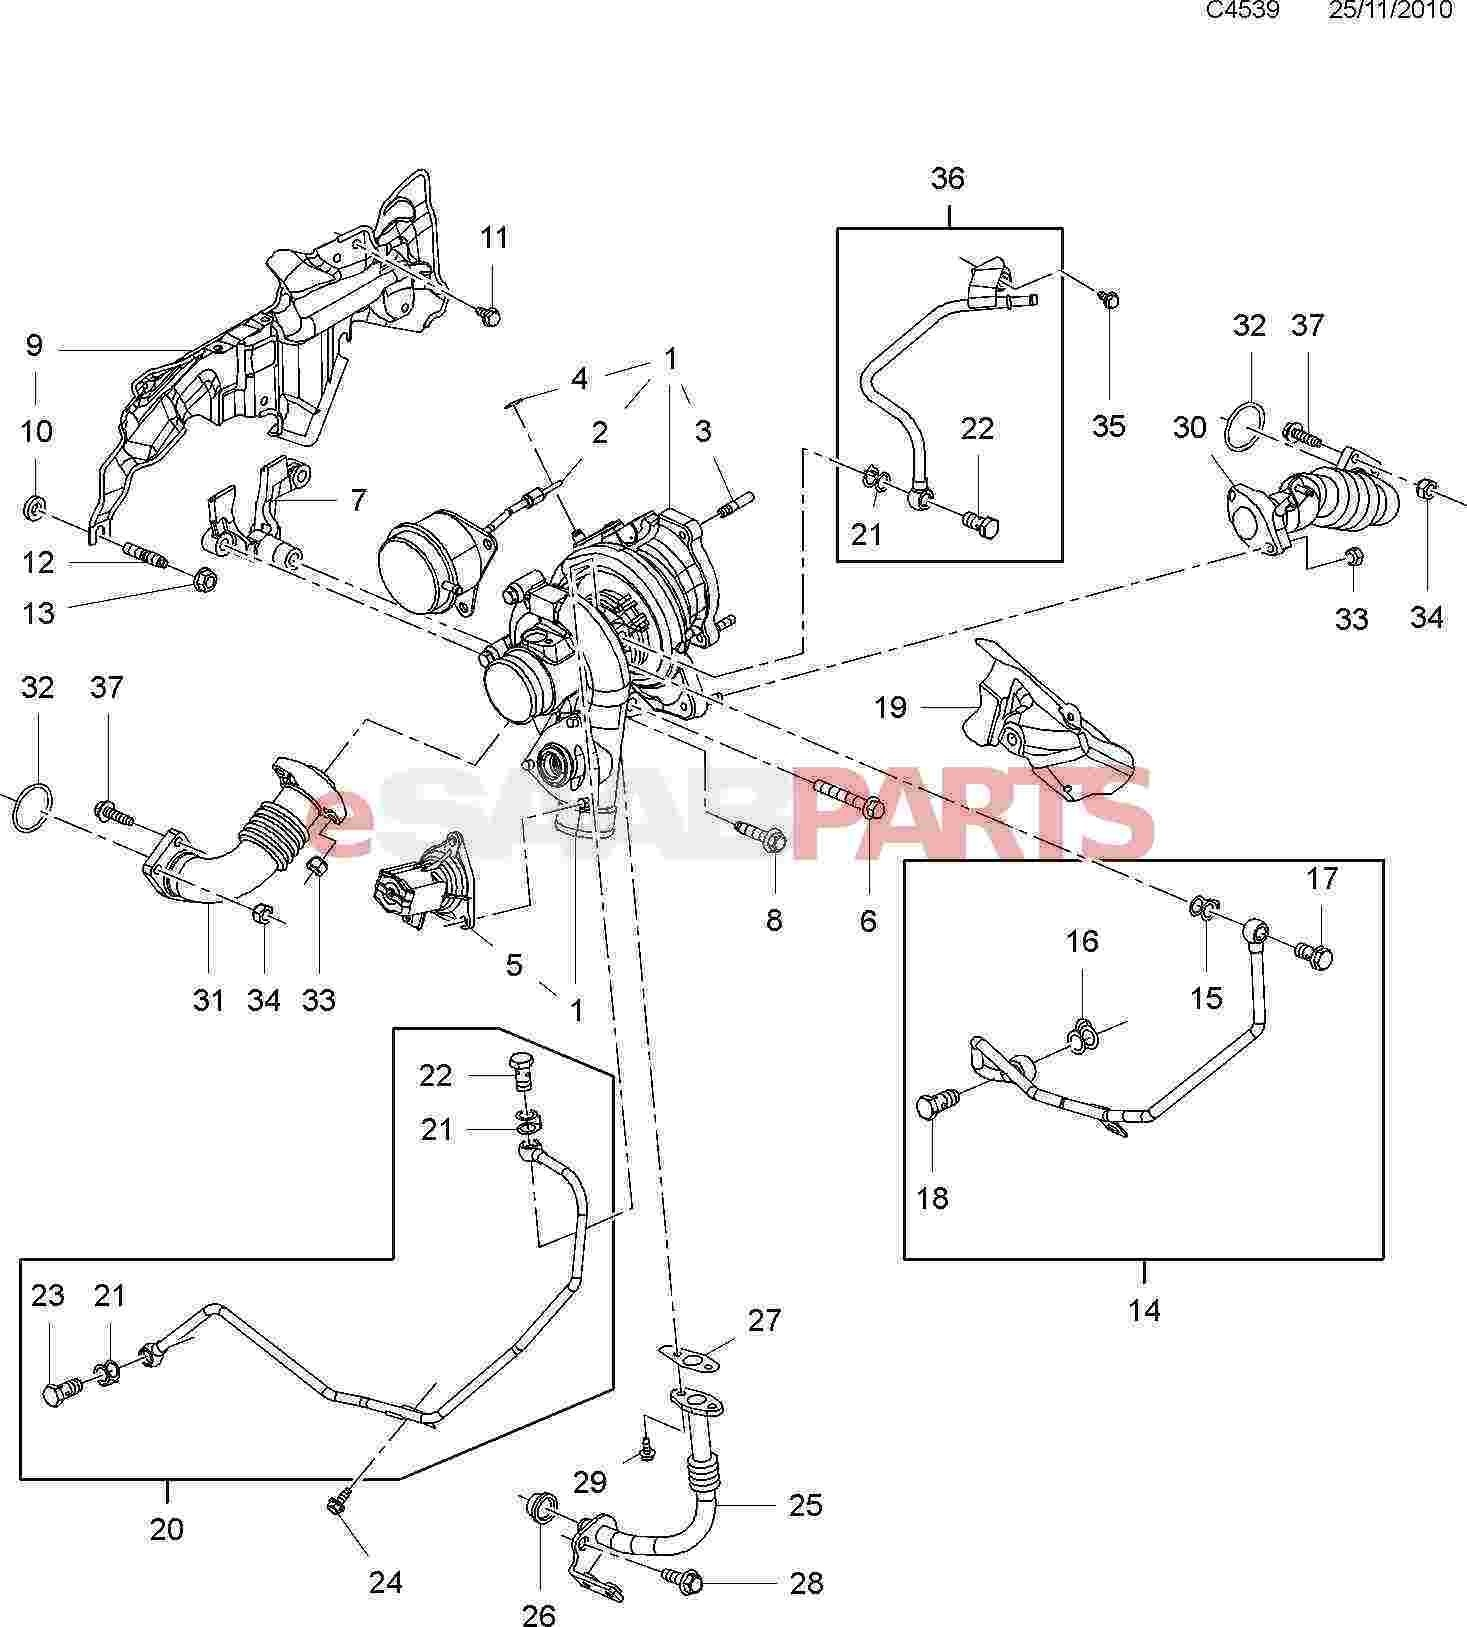 Saab 9 3 Engine Diagram Saab 9 5 Engine Diagram 2 2 ] Saab Nut Hfh 10—1 5 Thd 9 8 Thk 21 8 Of Saab 9 3 Engine Diagram